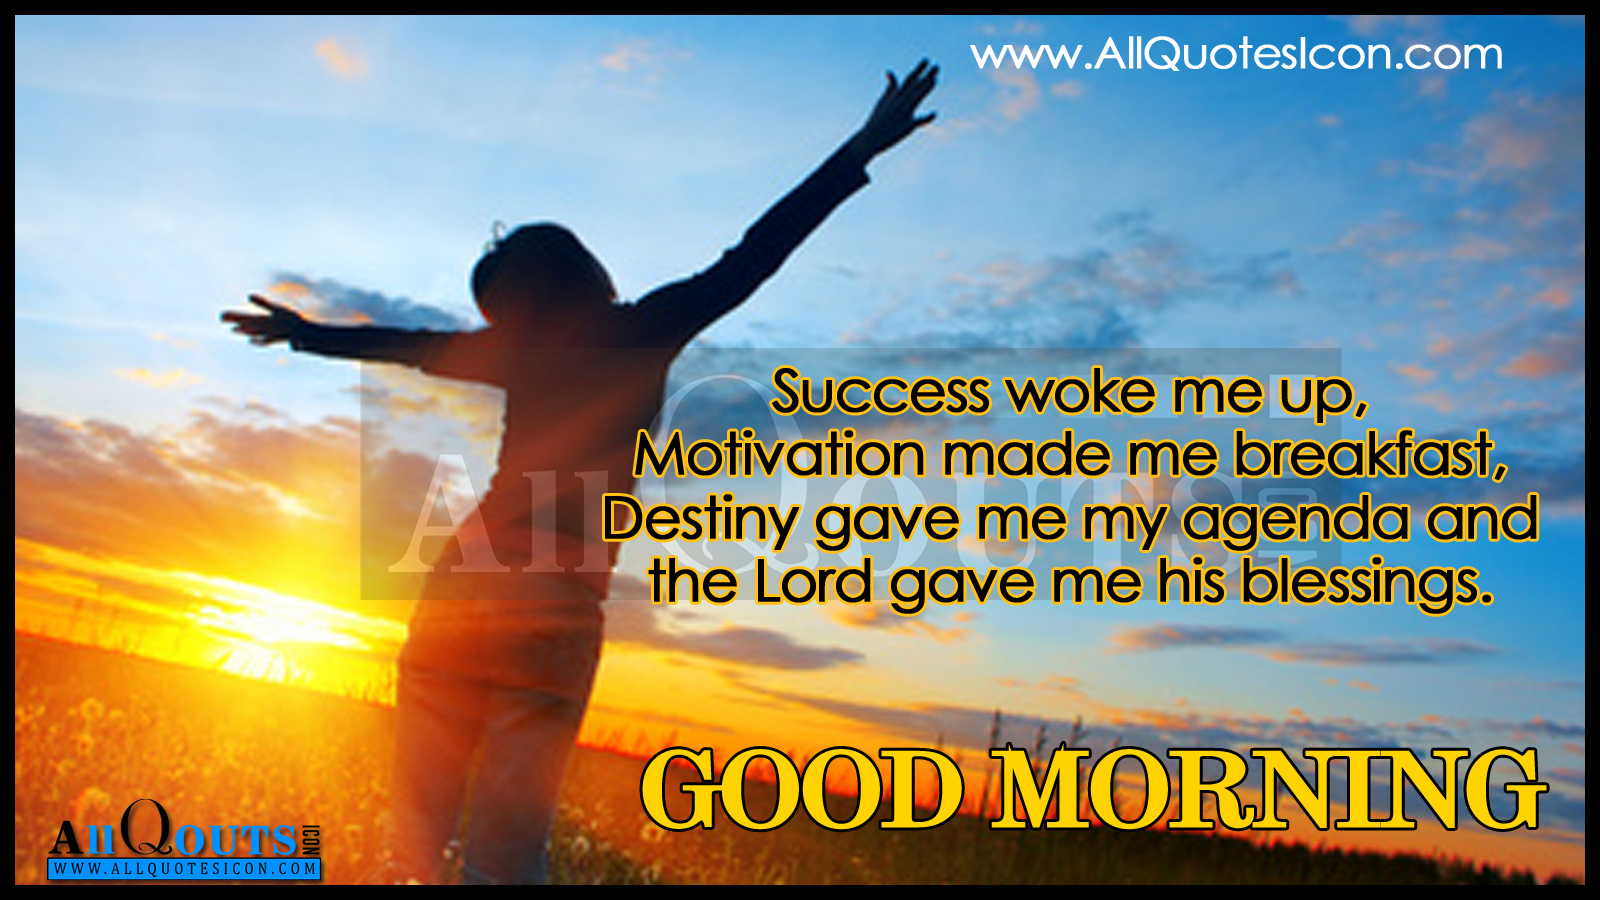 Beautiful Hd Pictures And Sayings In English Good Morning